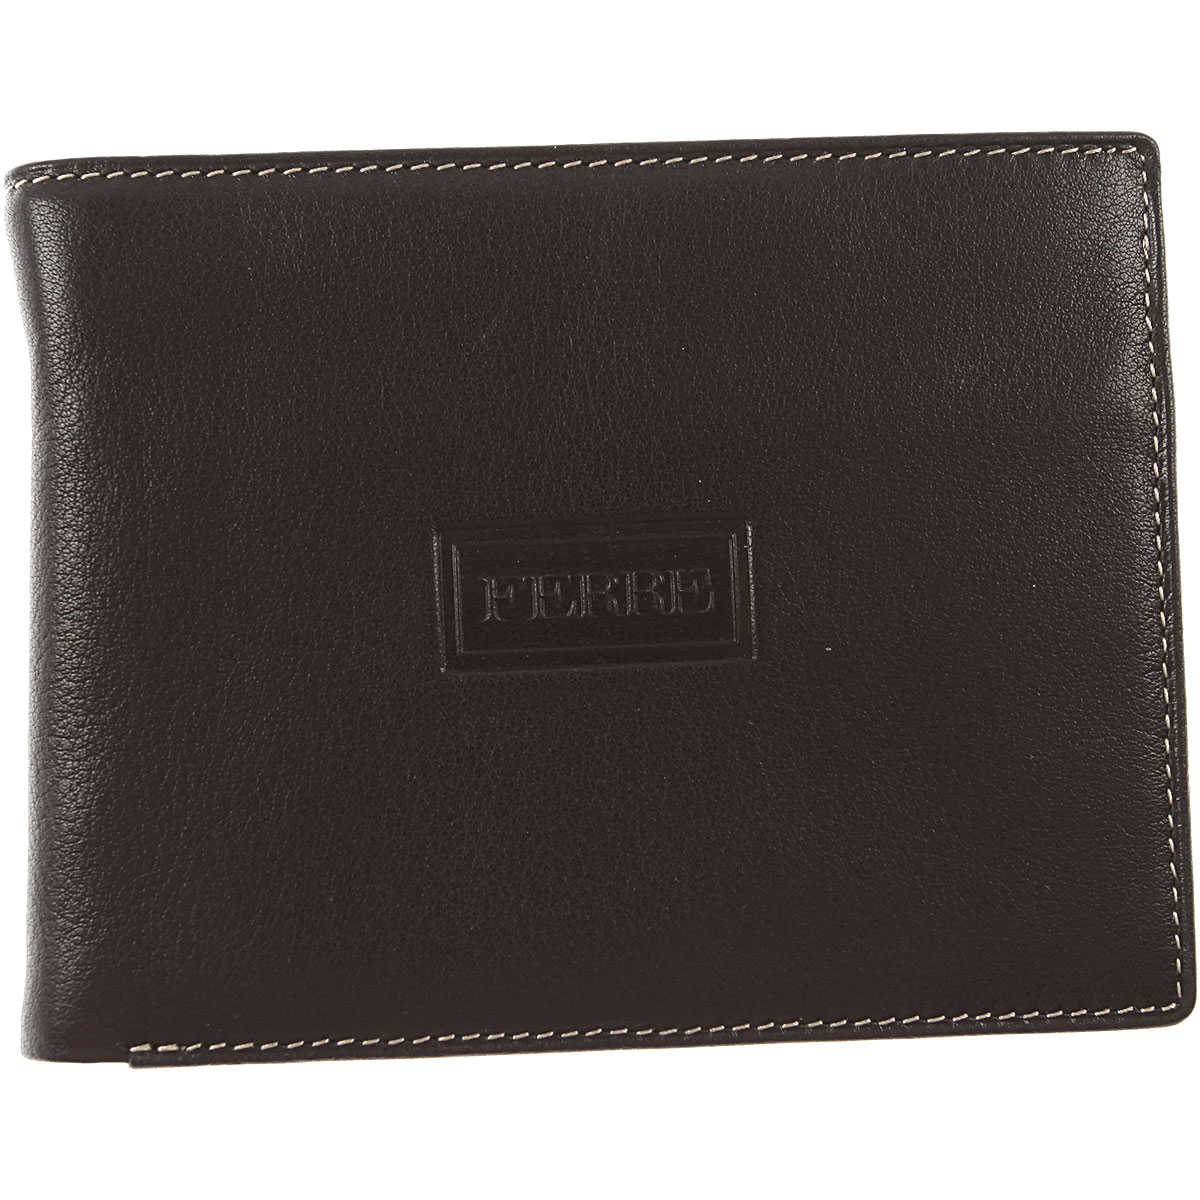 Gianfranco Ferre Wallet for Men On Sale in Outlet Black SE - GOOFASH